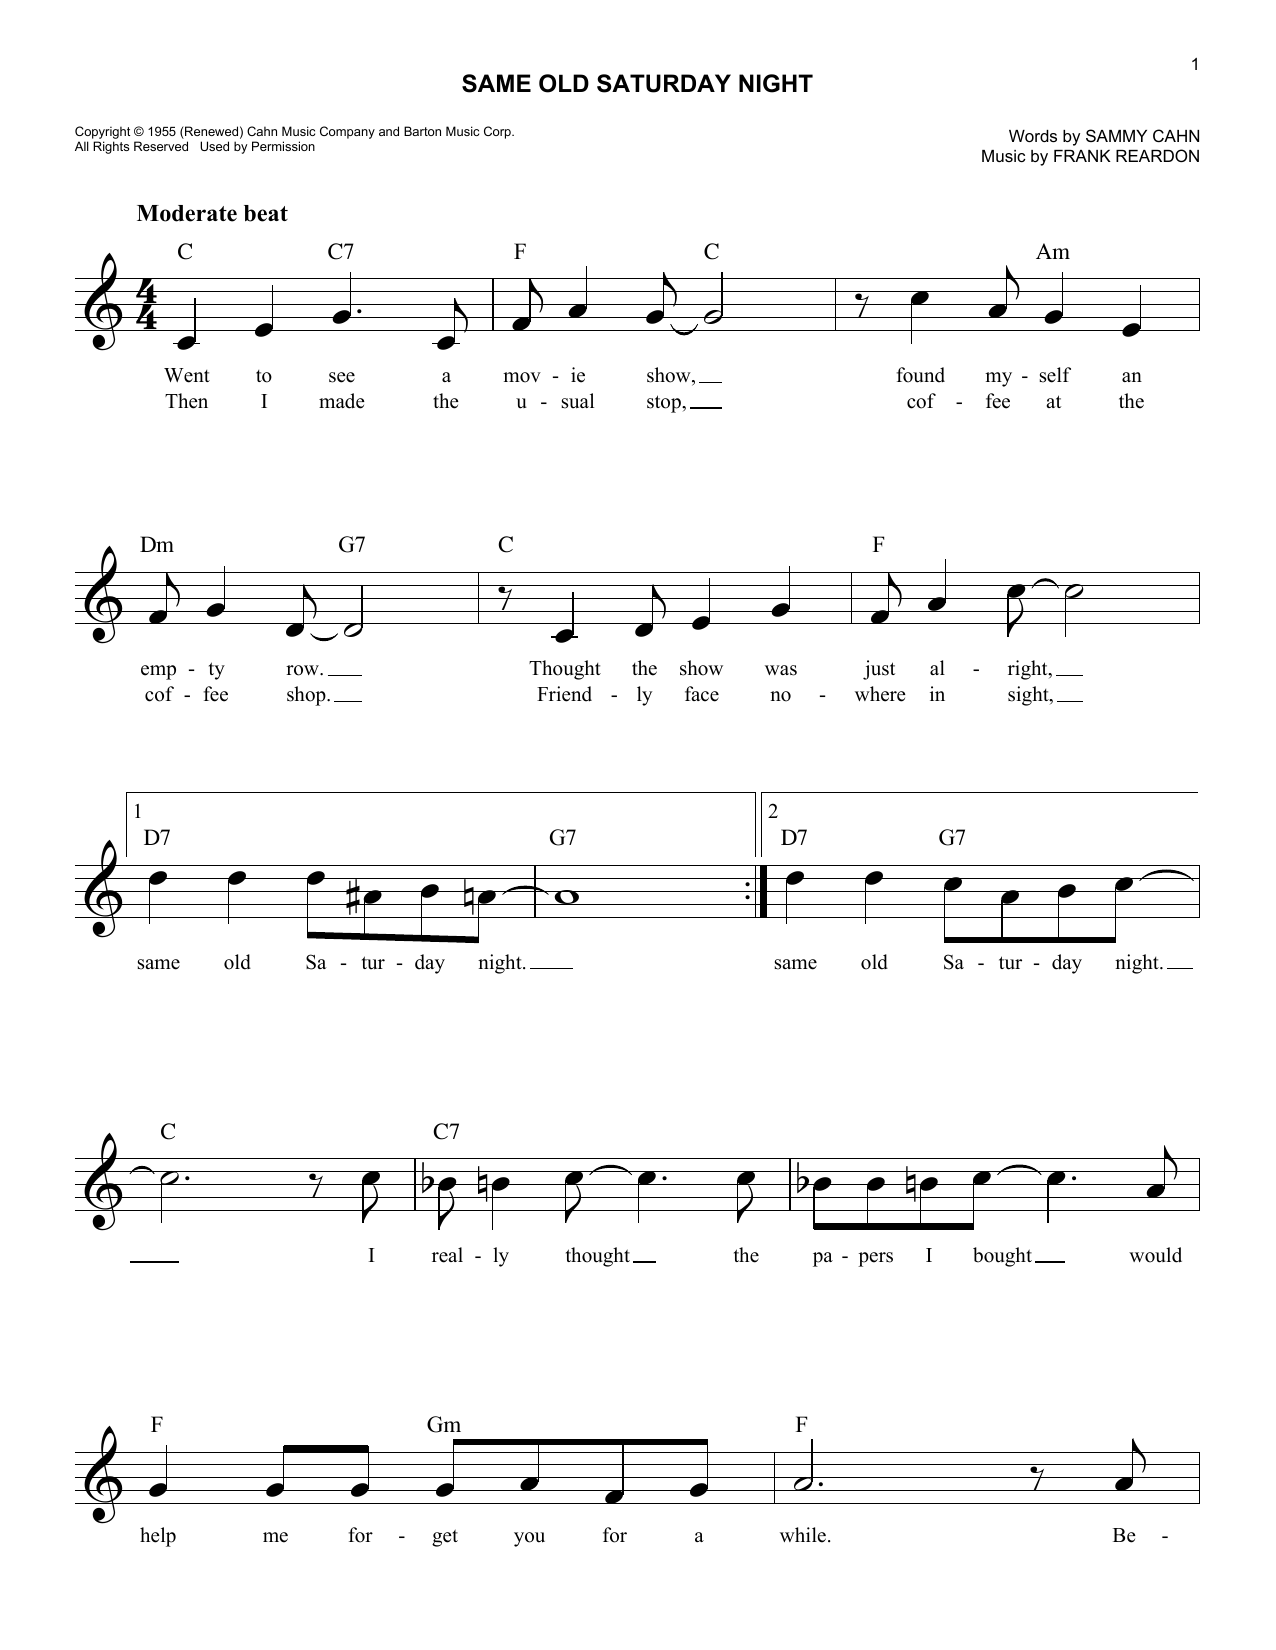 Same Old Saturday Night (Melody Line, Lyrics & Chords)